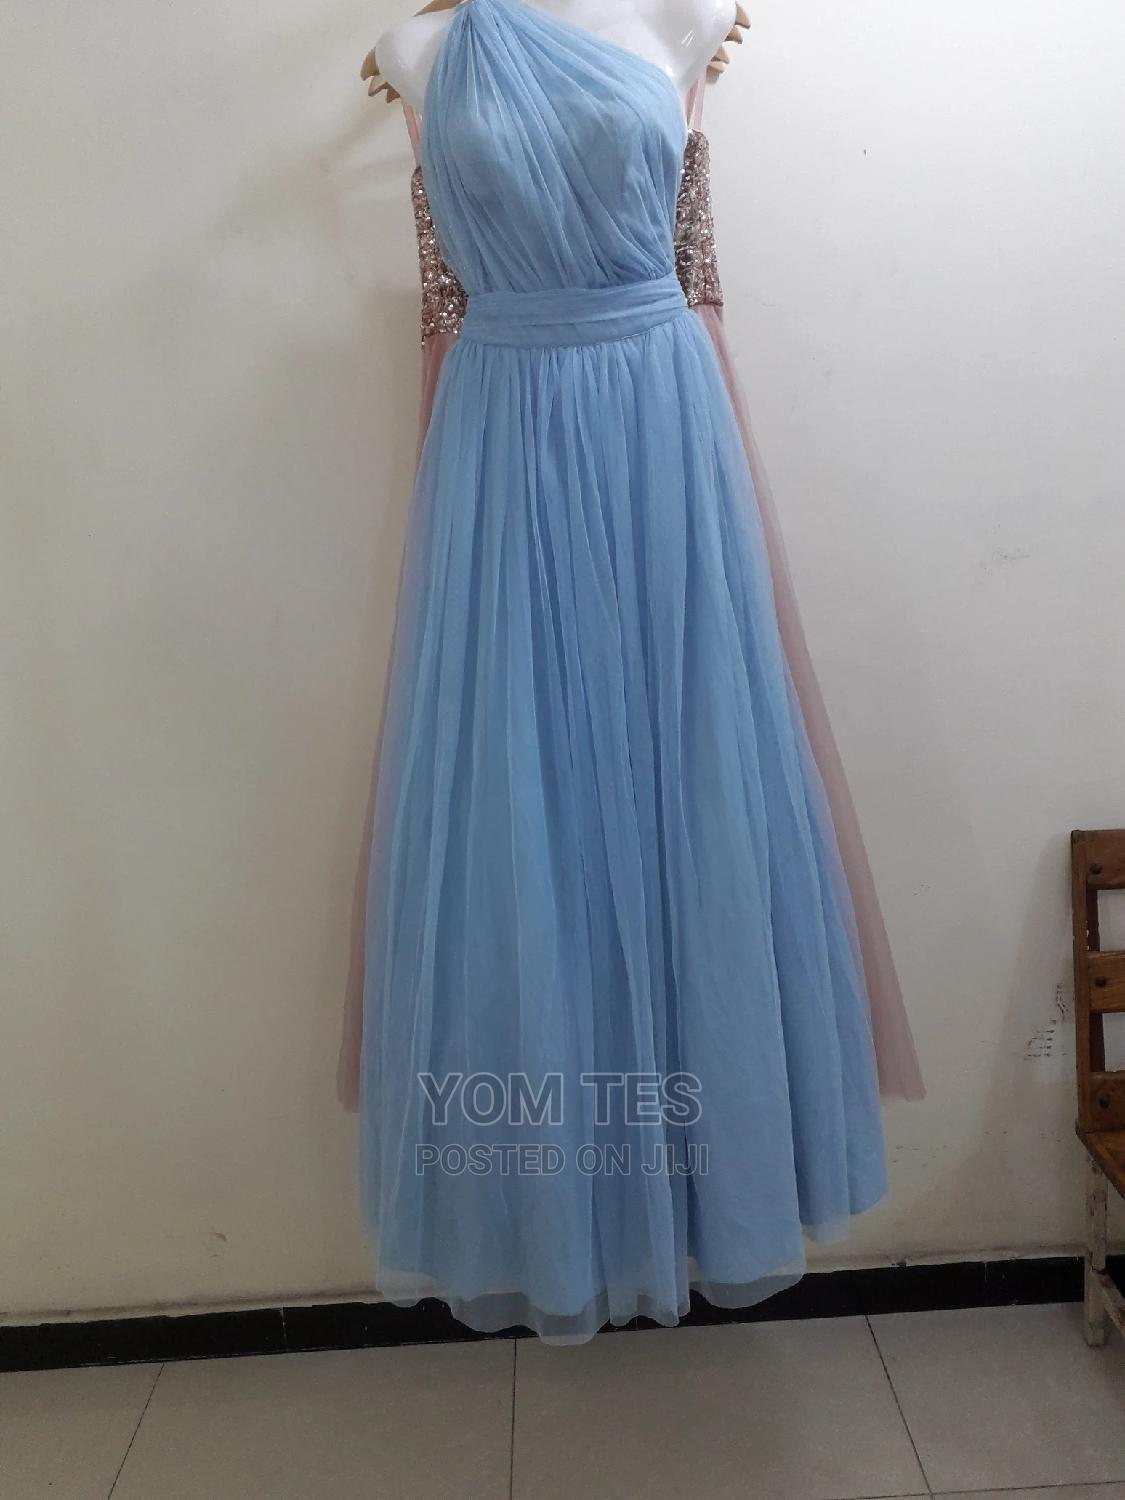 Occasion and Prom Dress for Rent in Light Blue Clr | Clothing for sale in Bole, Addis Ababa, Ethiopia